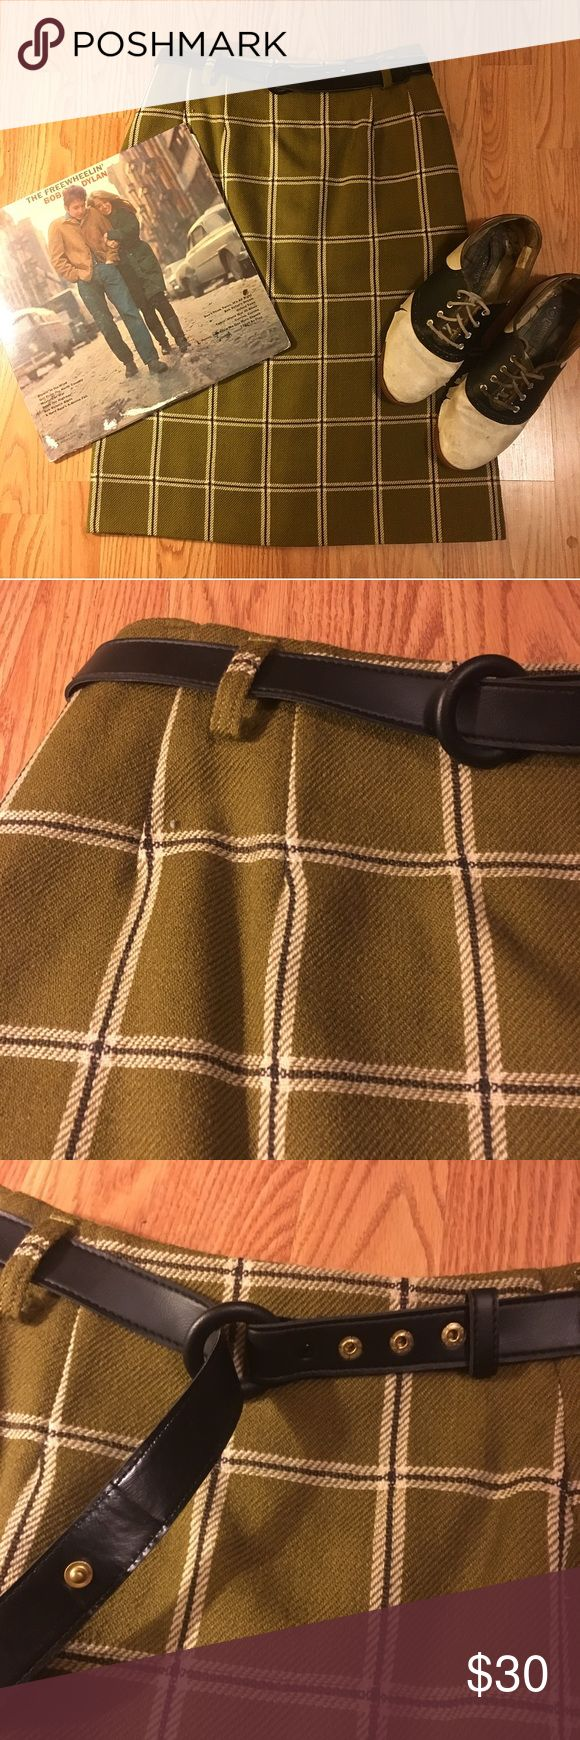 🌲60s Wool Skirt🌲 Darling avocado green wool skirt. Zips up back. Belt included. Waist measures 13.5 in lying flat. Fits a size 4/6 best. Excellent vintage condition, very lightly worn! ((TAGS: vintage, retro, mod, pinup, 50s, 60s, 70s, bohemian, Beat Generation, Greenwich Village, Twin Peaks, Audrey Horne, rockabilly, Hell Bunny, Sourpuss, Voodoo Vixen, Bettie Page, Modcloth, American Apparel, Urban Outfitters)) Vintage Skirts Midi